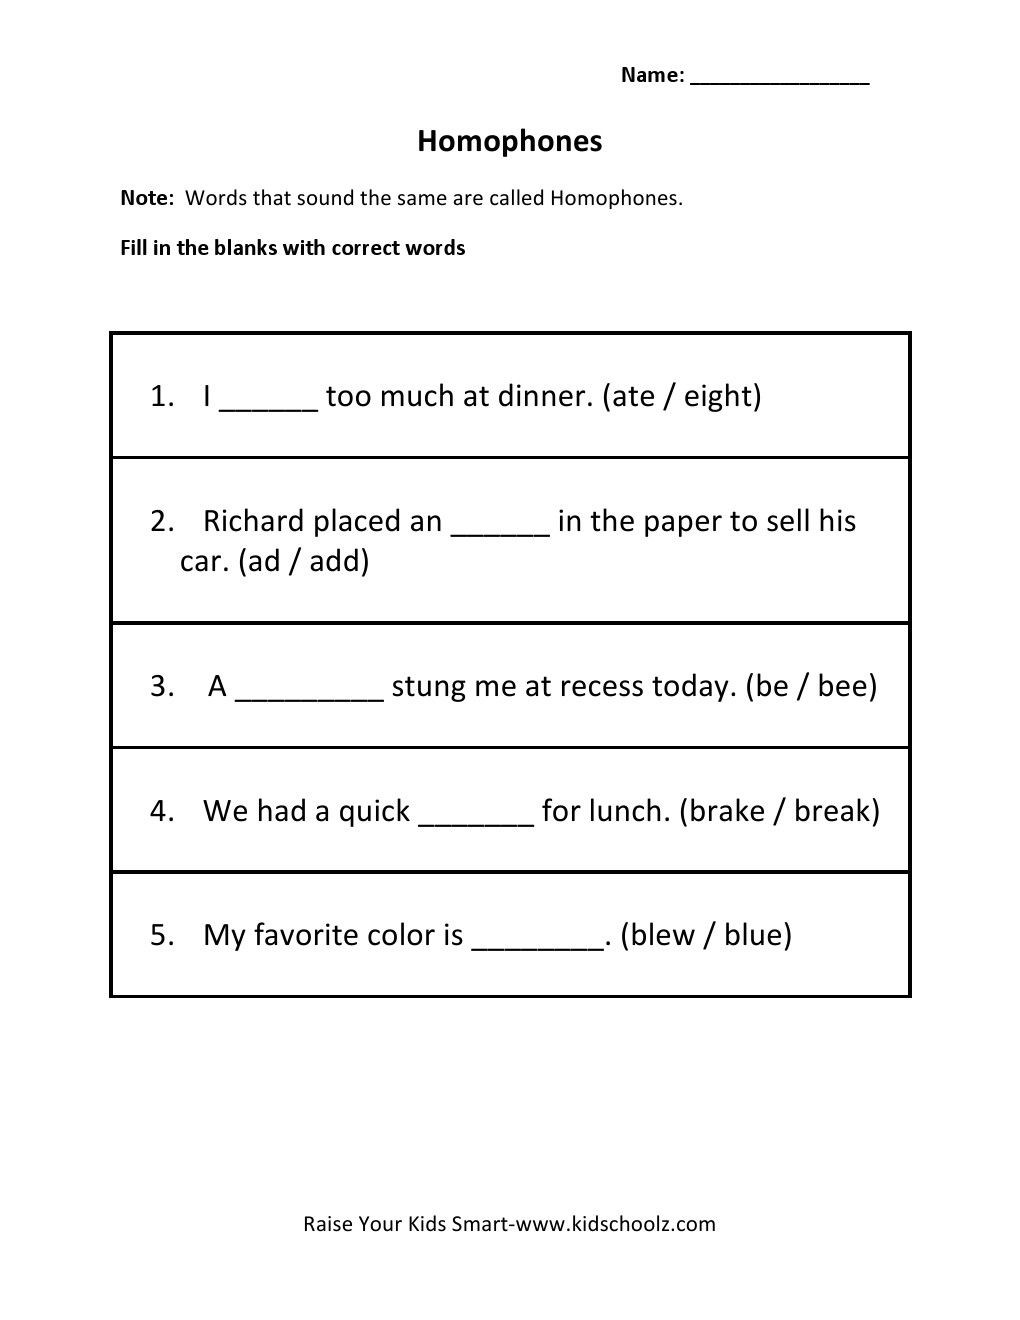 Homophone Worksheets 5th Grade Wp Content 2014 09 Homophones 1